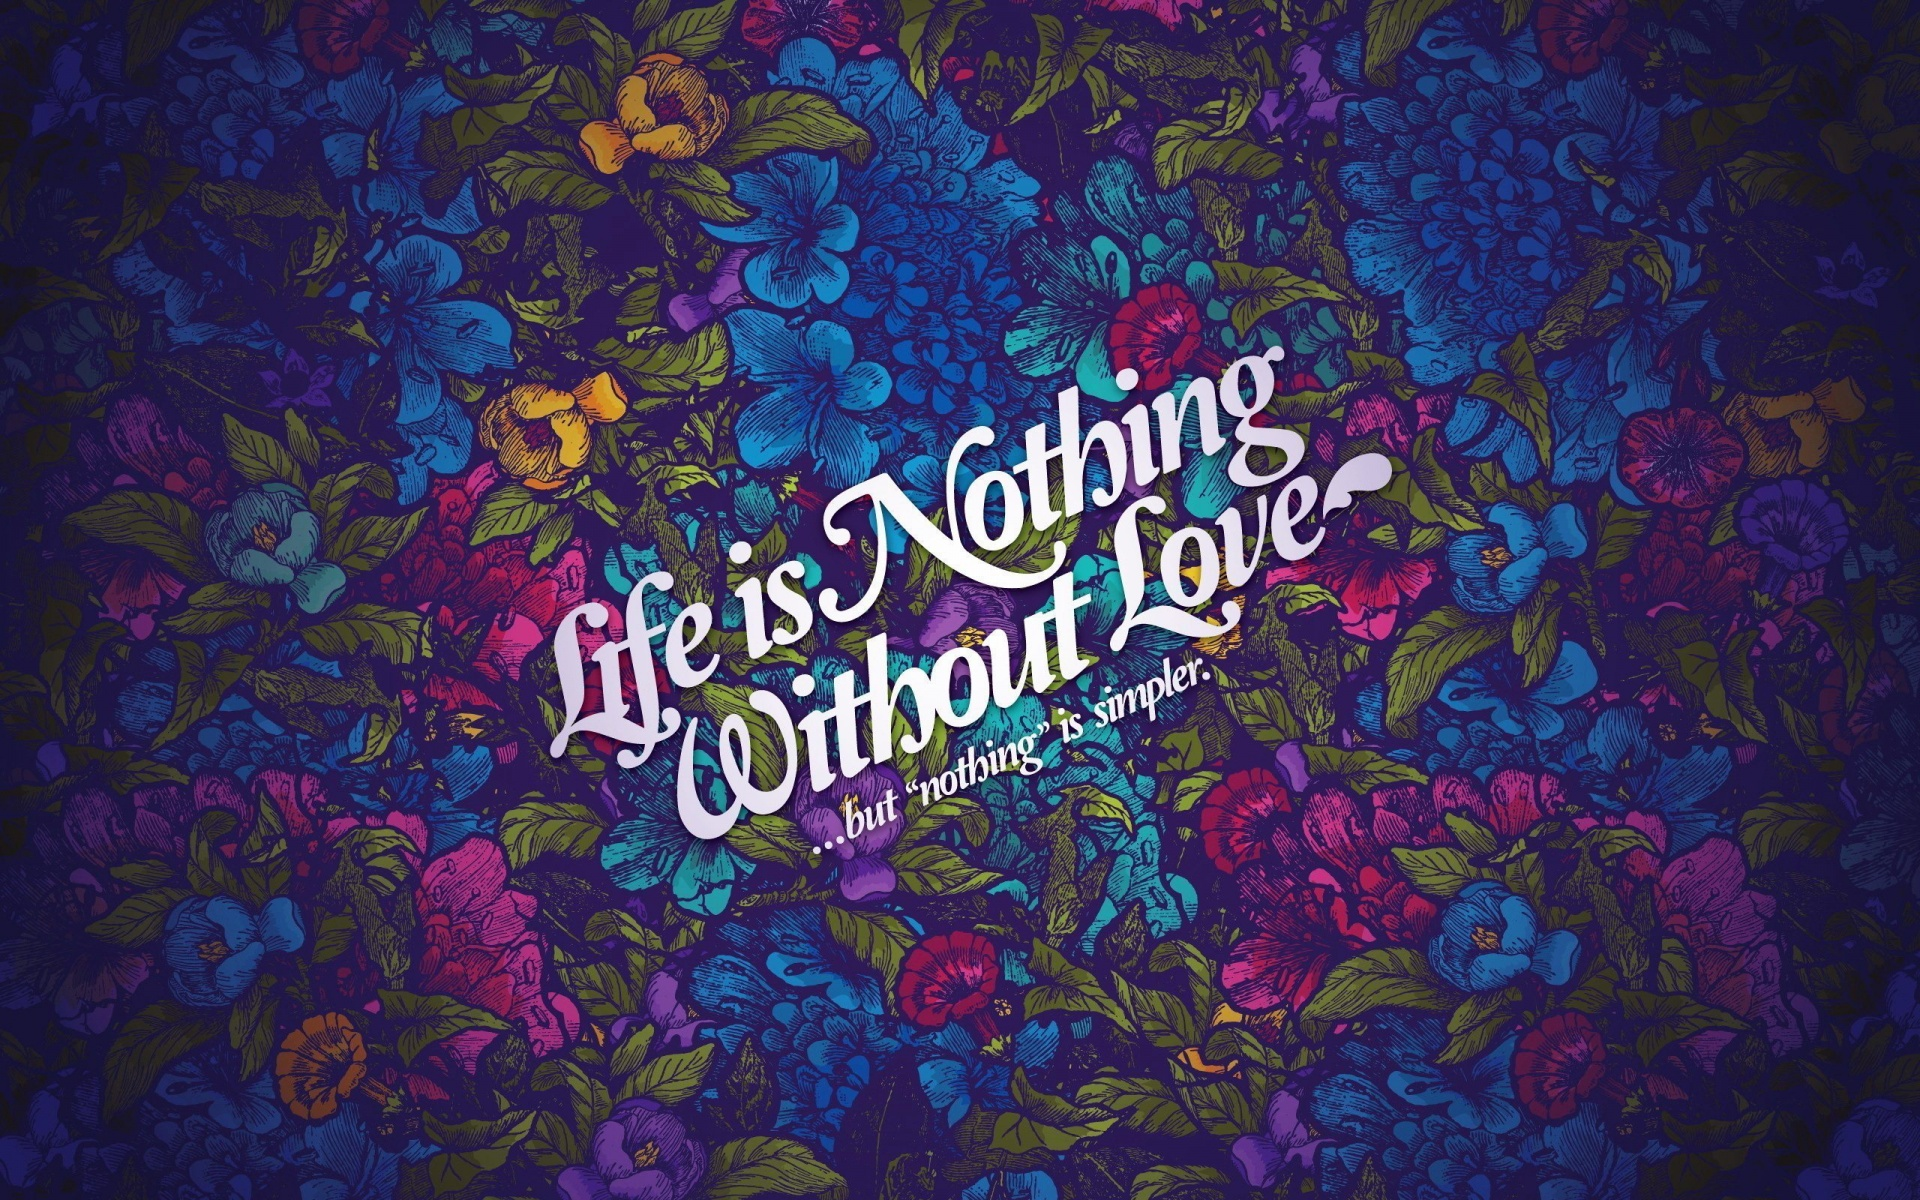 life nothing without love wallpapers in jpg format for free download